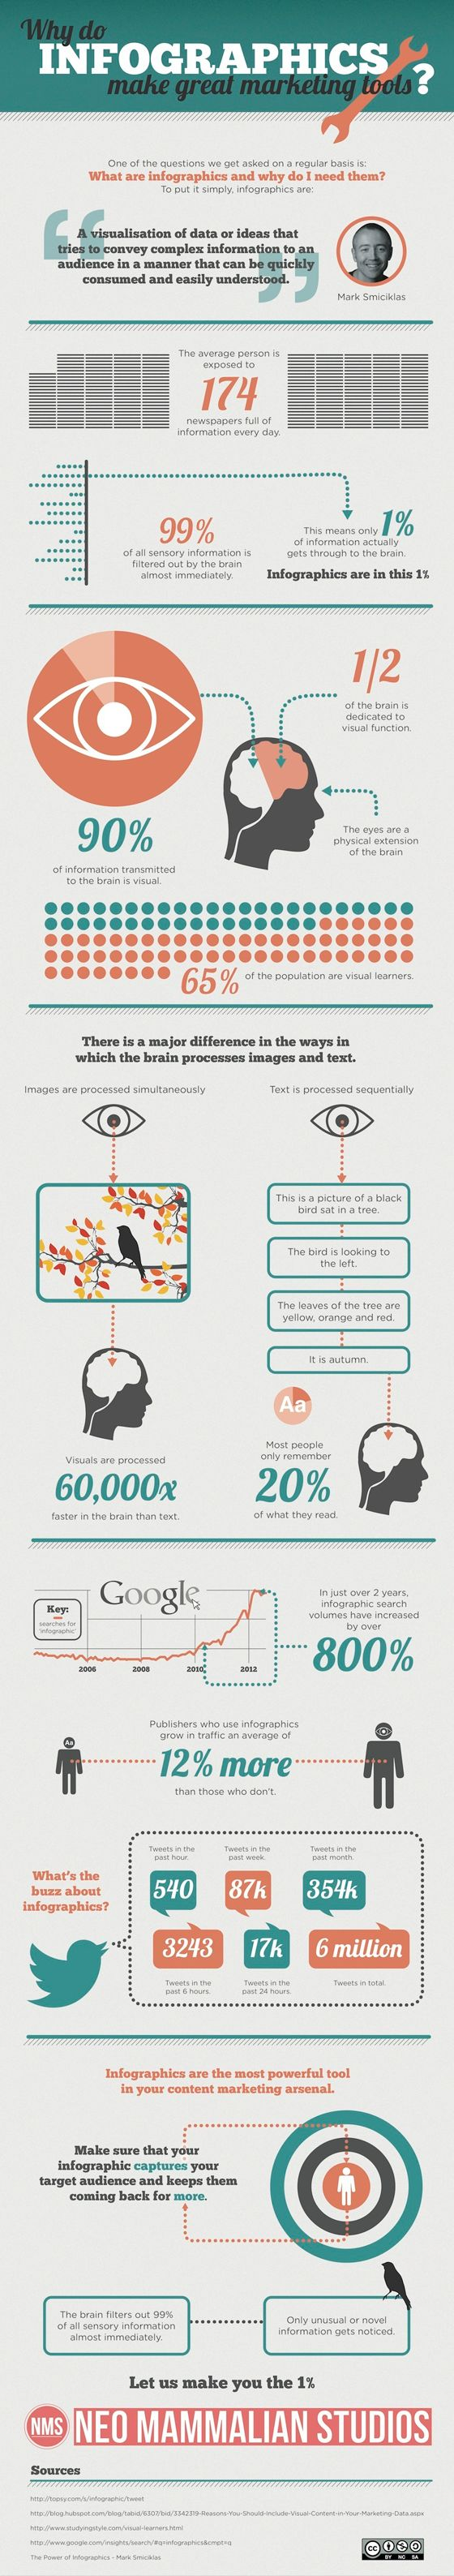 Publishers who use infographics grow in traffic an average of 12% more than those that don't